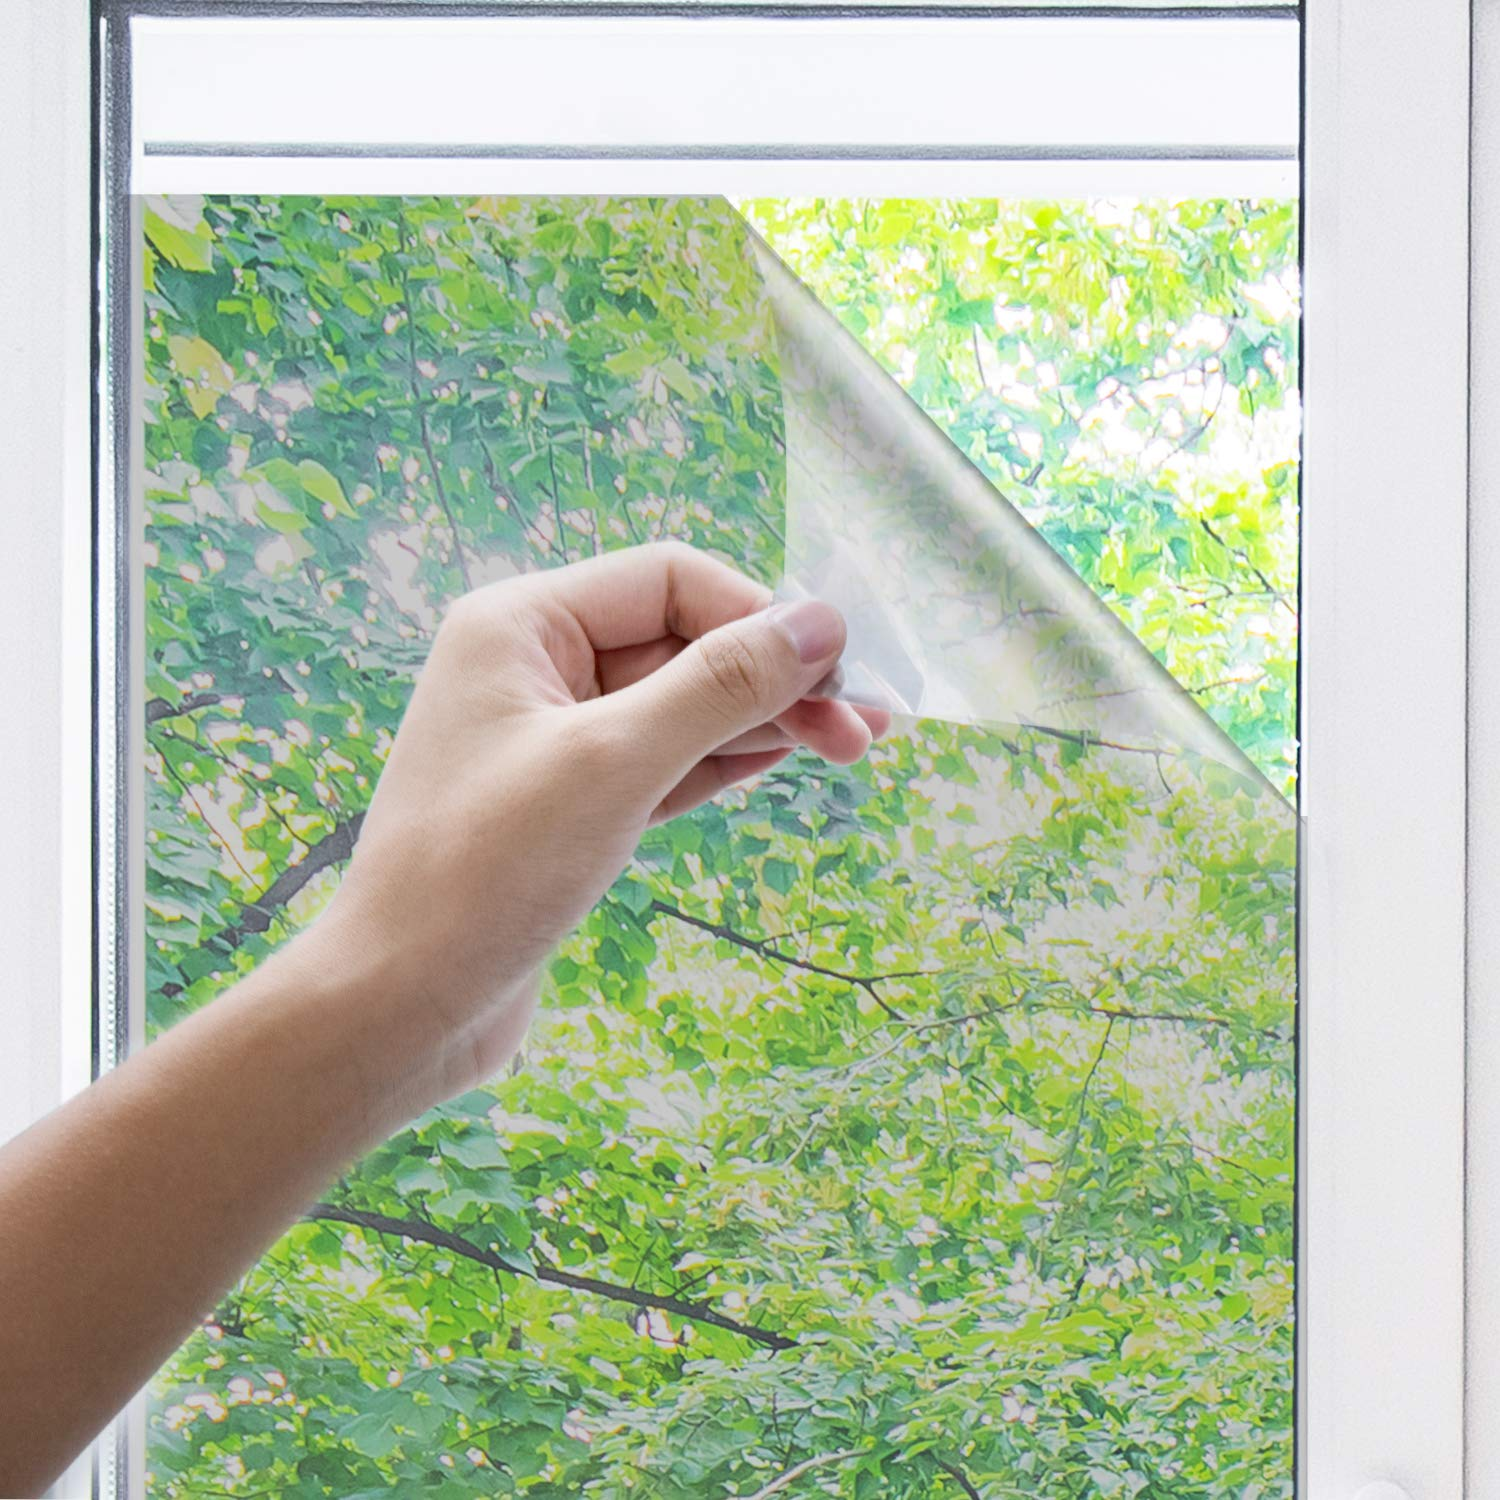 "innoAura One Way Window Film- Anti UV Static Cling Window Film 100% Light Blocking for Privacy Removal Decorate Heat Control Glass Tint Home Office Windows.(23.6"" x 78.7"", Silver)"